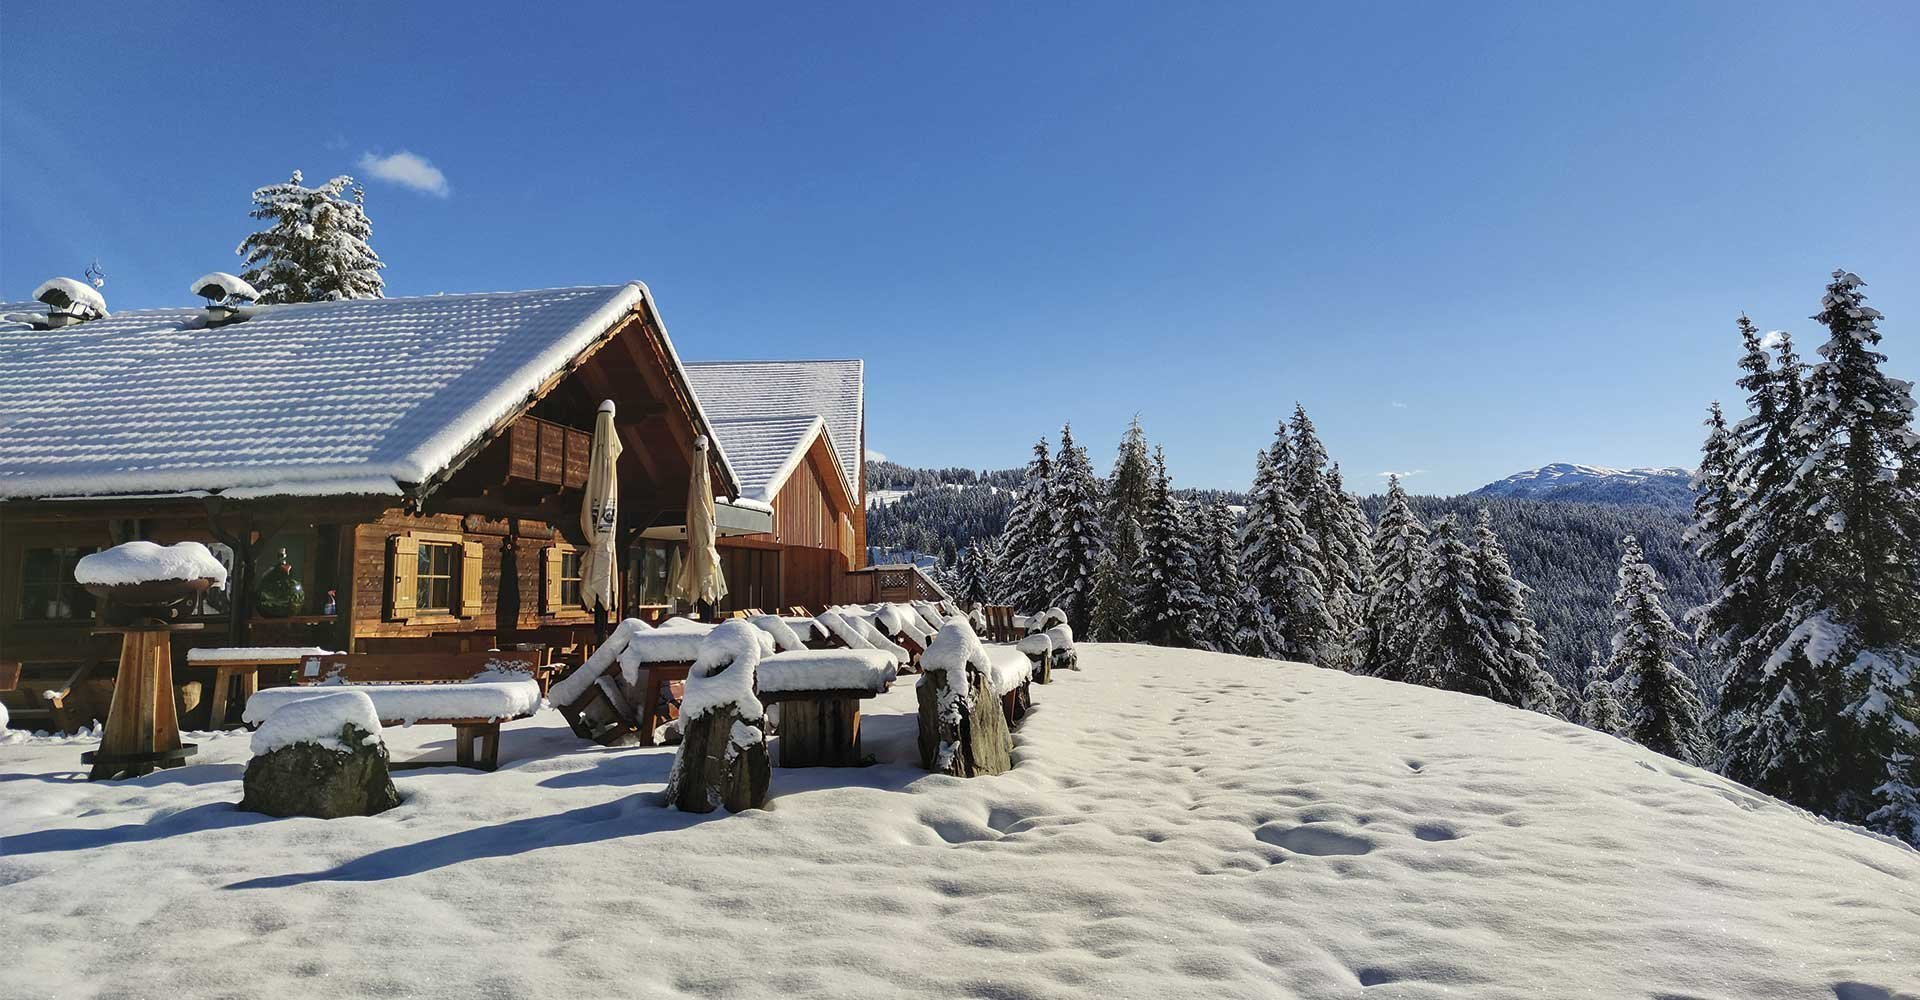 Stress-free vacation in an alpine lodge hotel